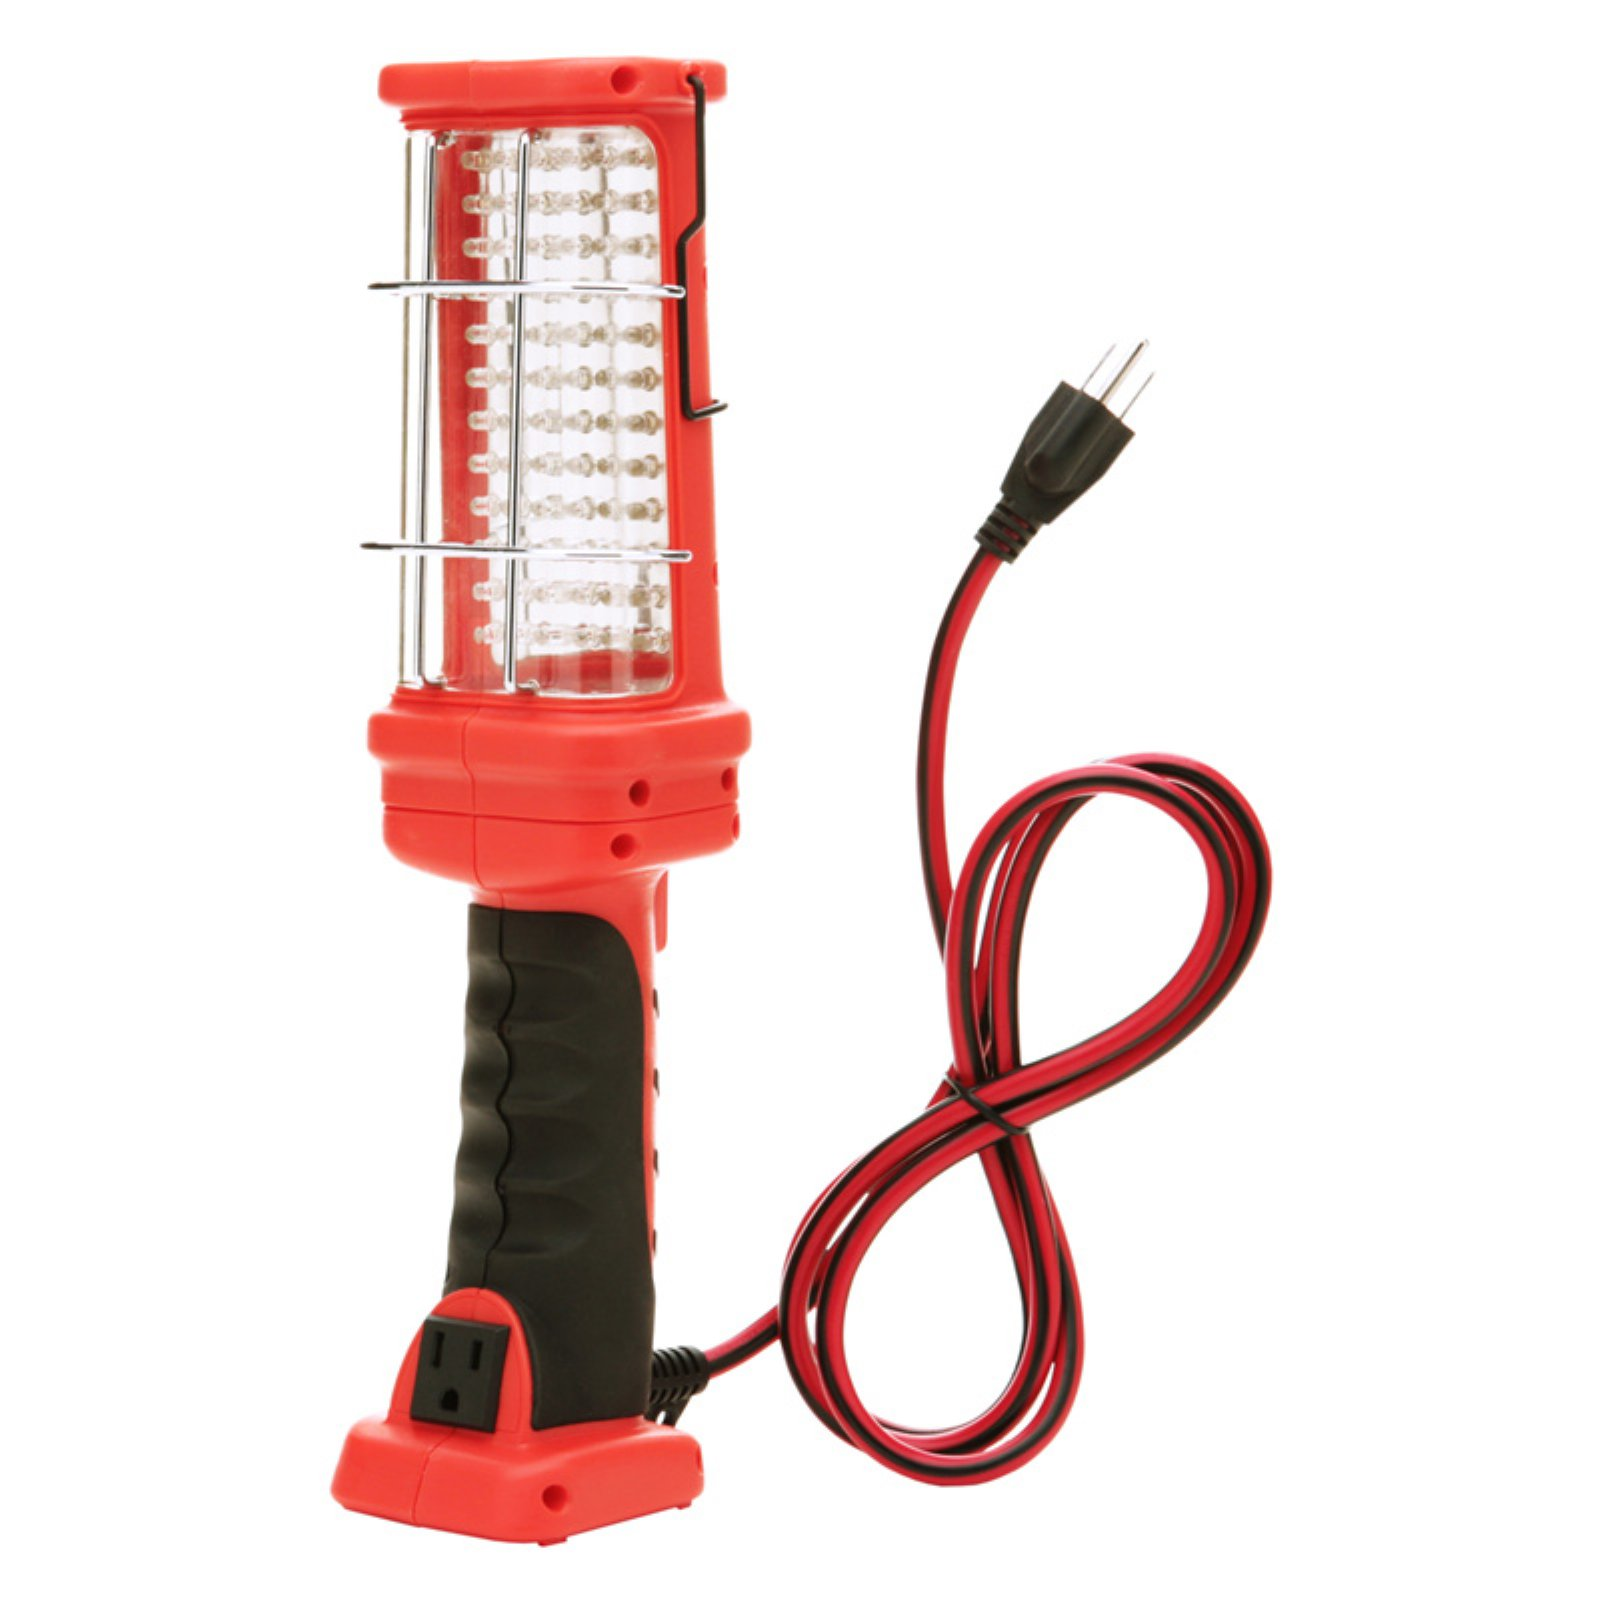 Woods 16/3 Gauge Super Bright Hand Held Work Light with Grounded Outlet, 72-LED, Red, 6-Foot Cord